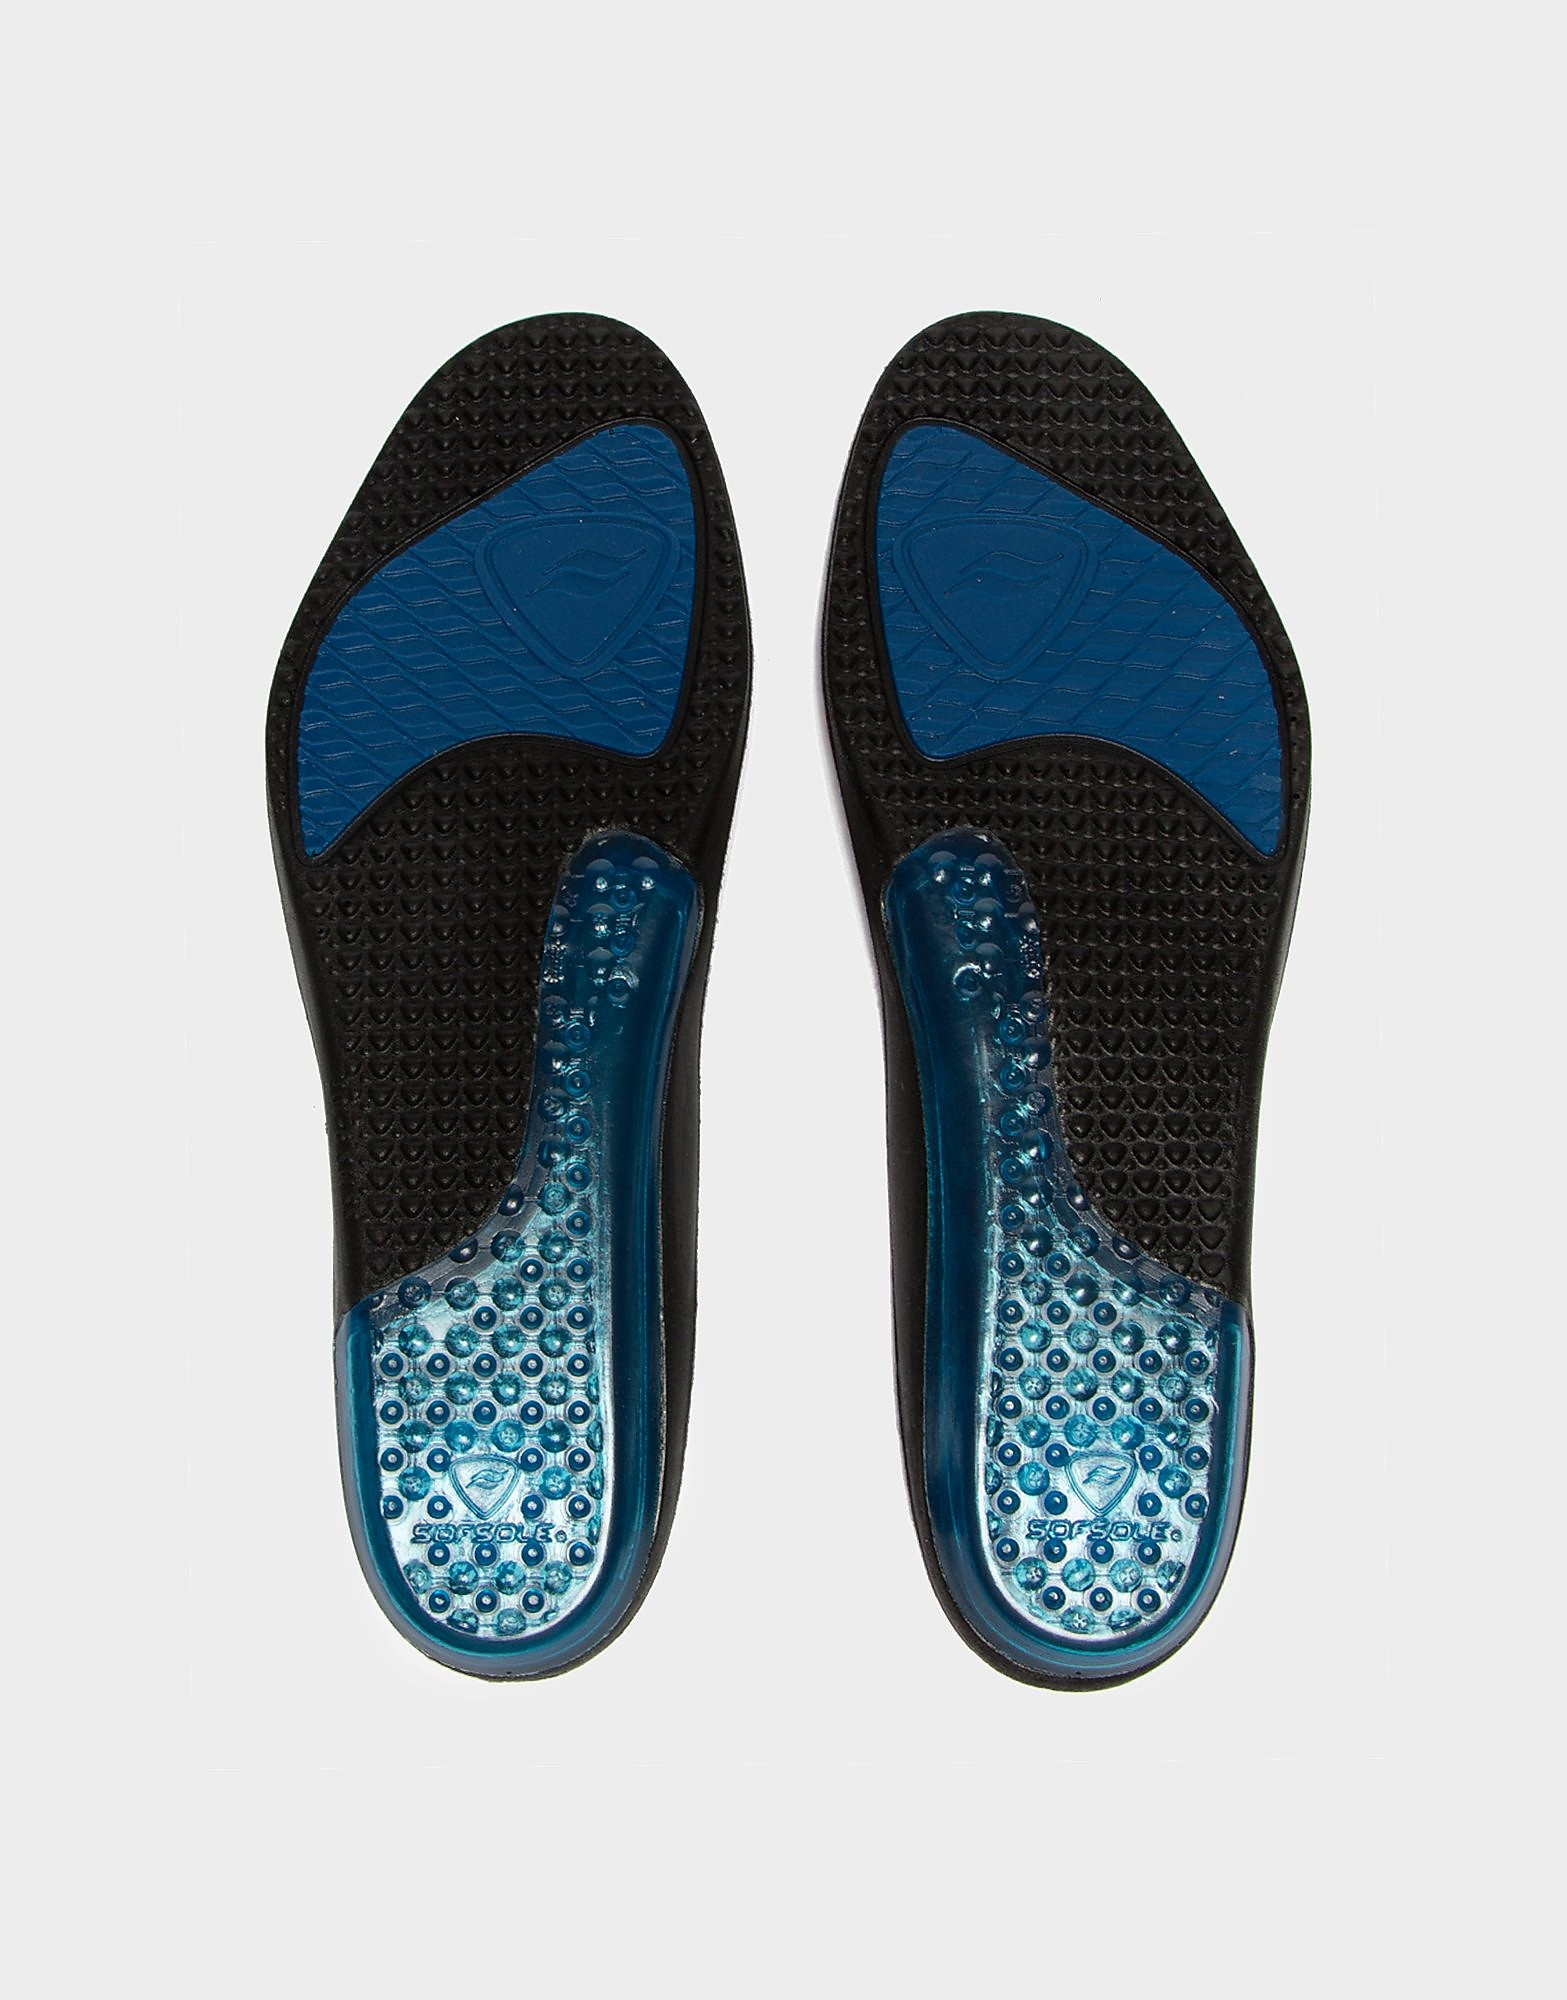 Sof Sole Airr Insole Men's